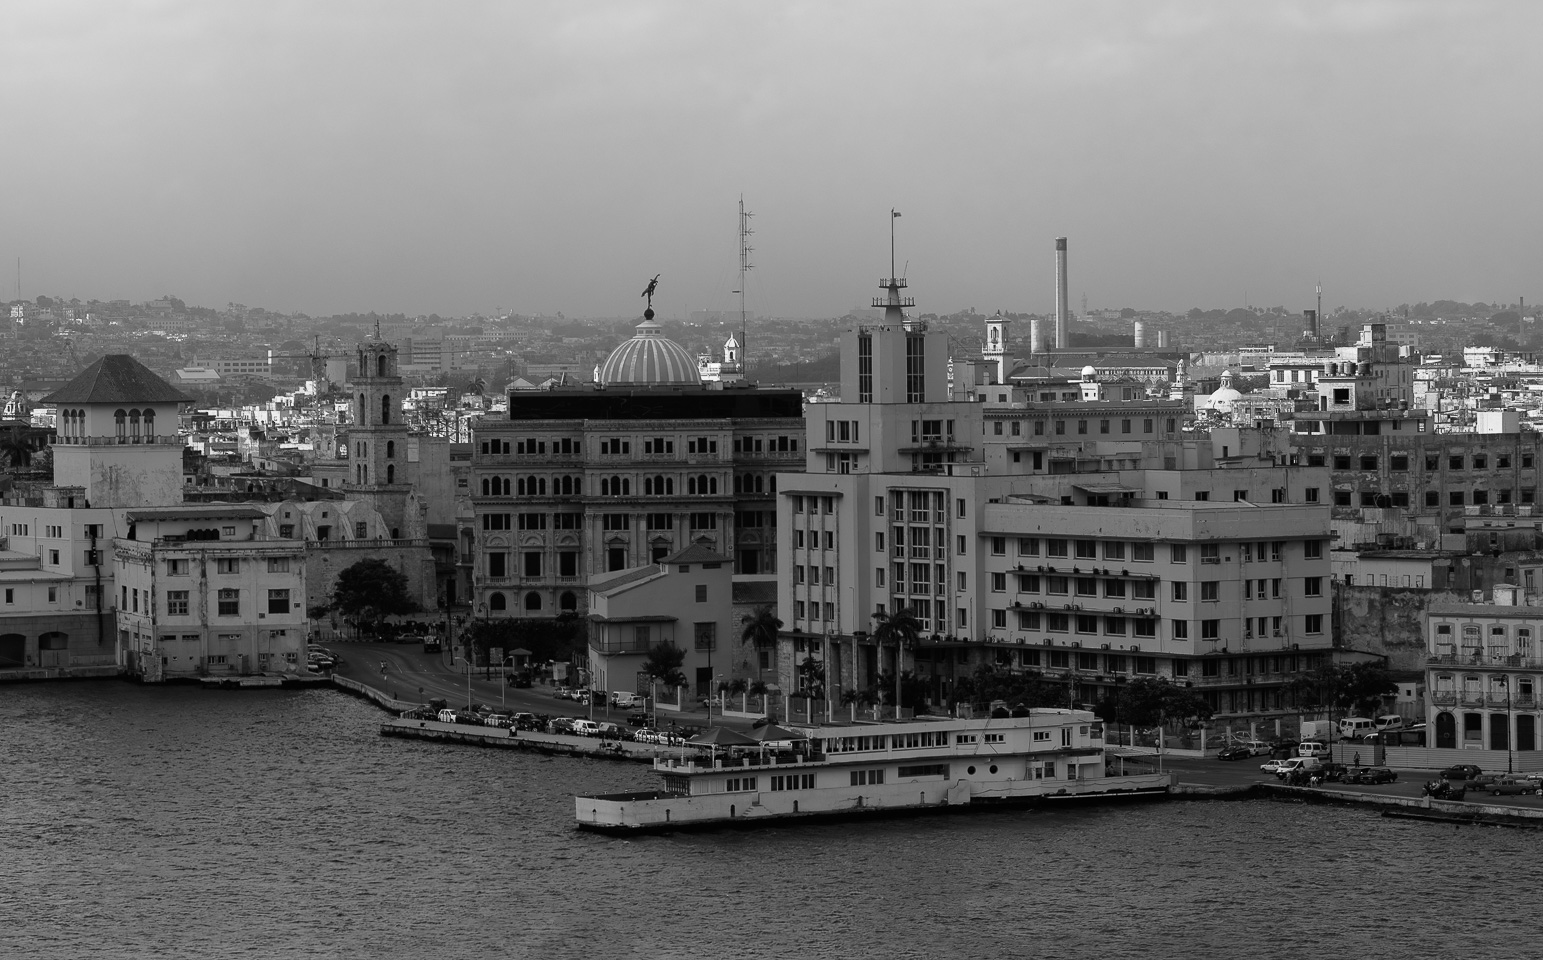 Malecon-Havana-Cityscape-panorama-black-and-white-fine-art_v1.jpg